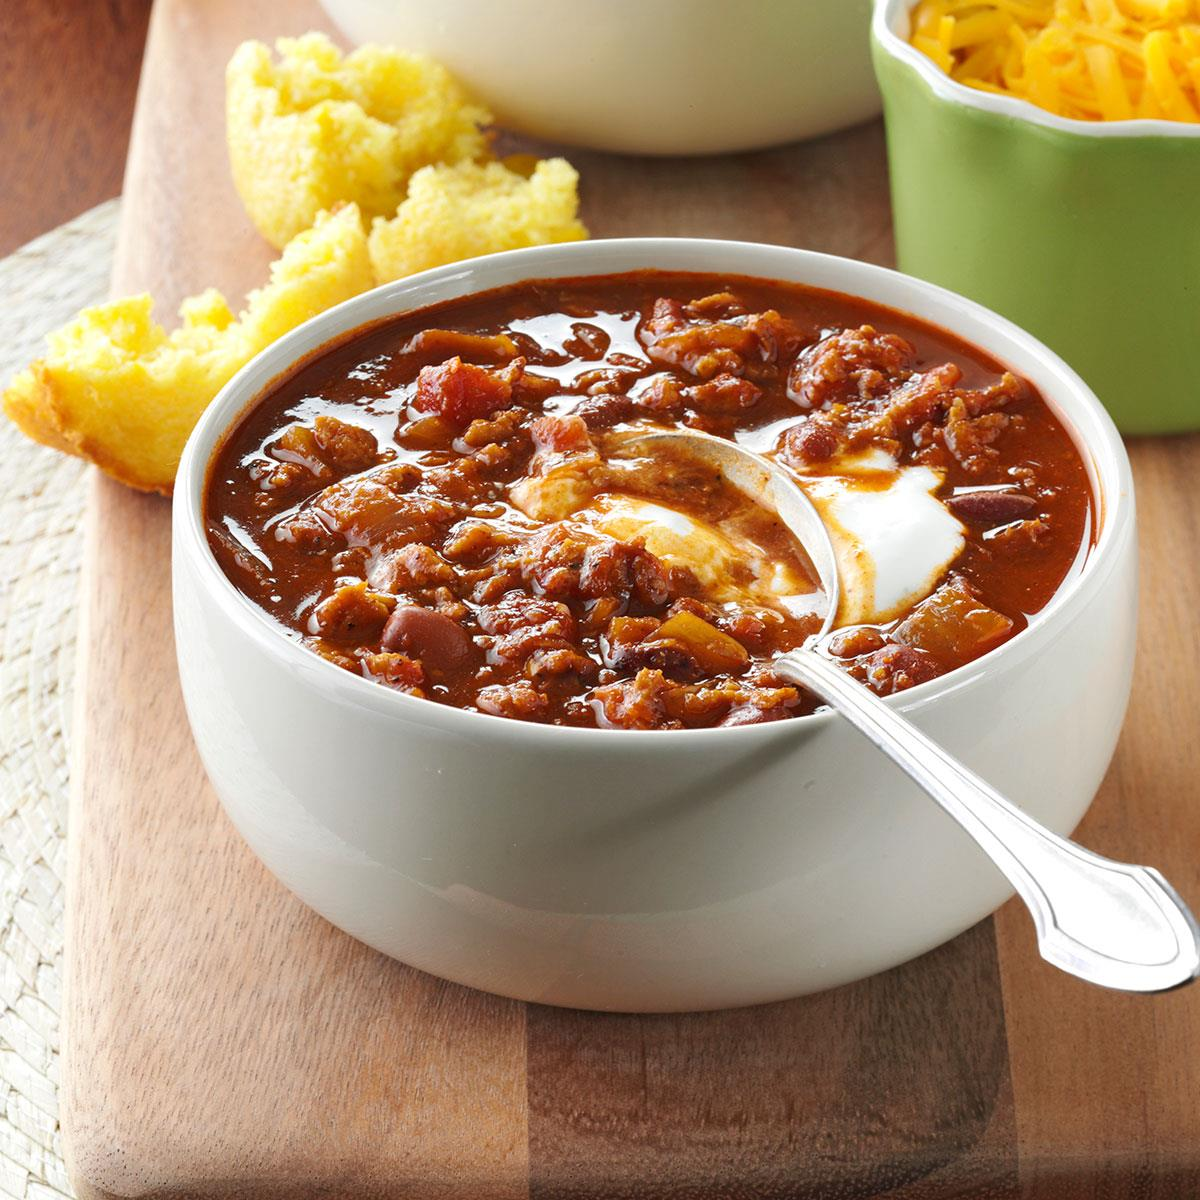 Canned with hot peppers or ketchup Chile tomatoes: recipes